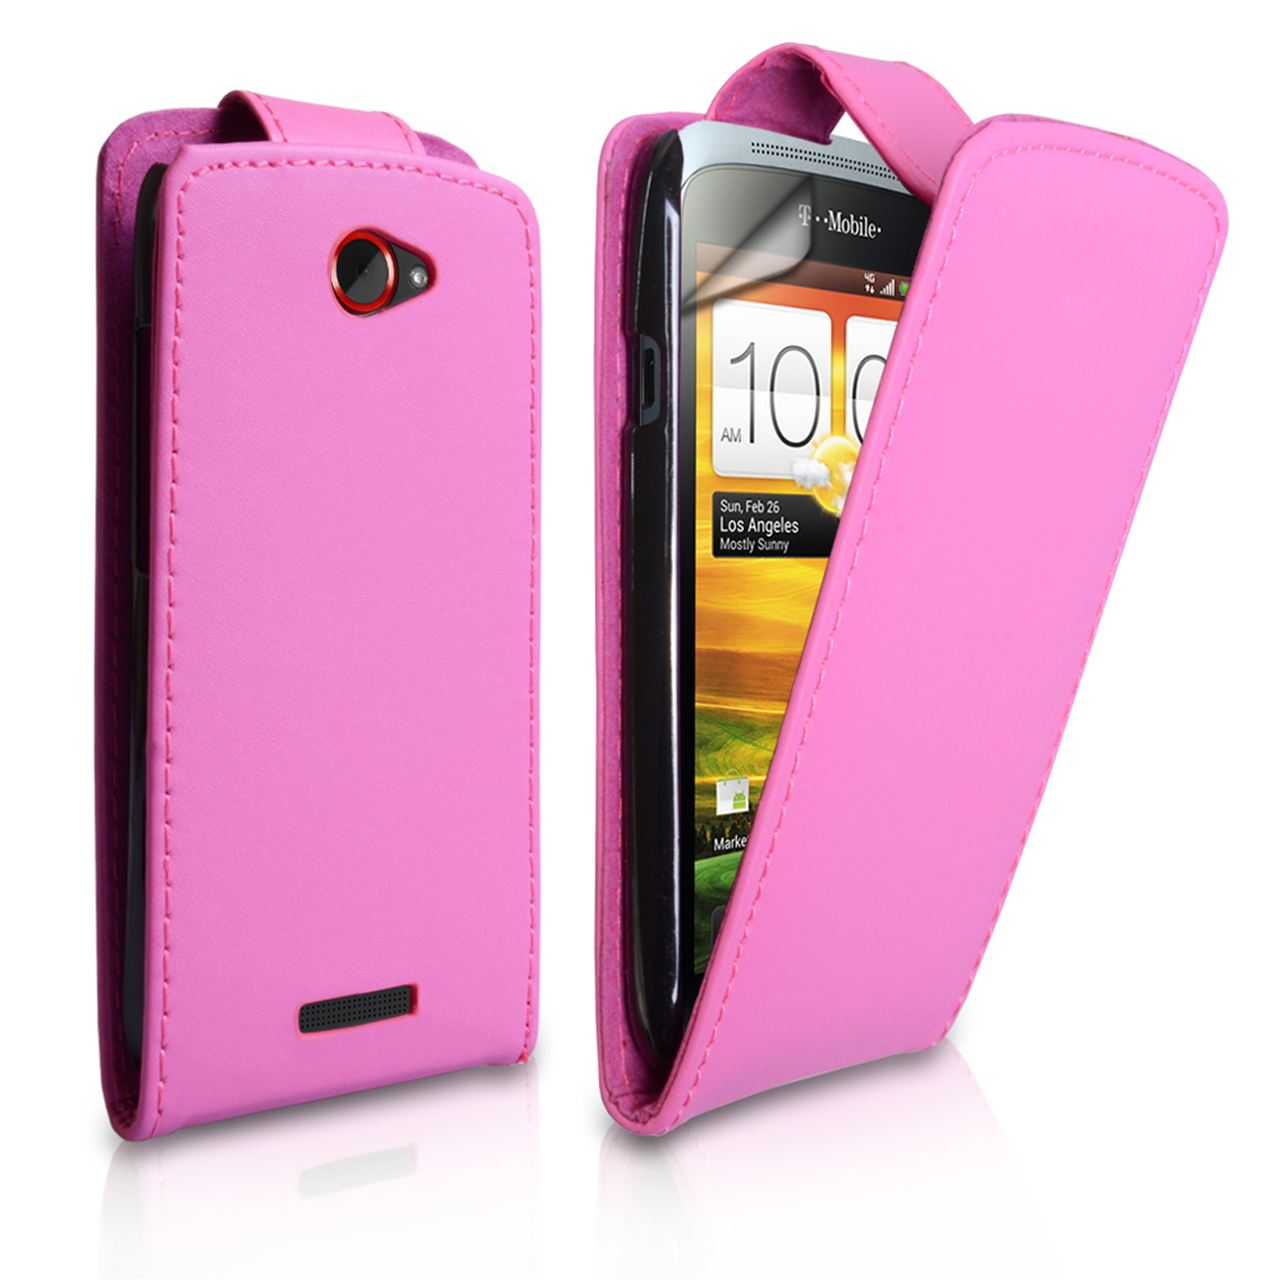 YouSave Accessories HTC One S Leather Effect Flip Case - Pink